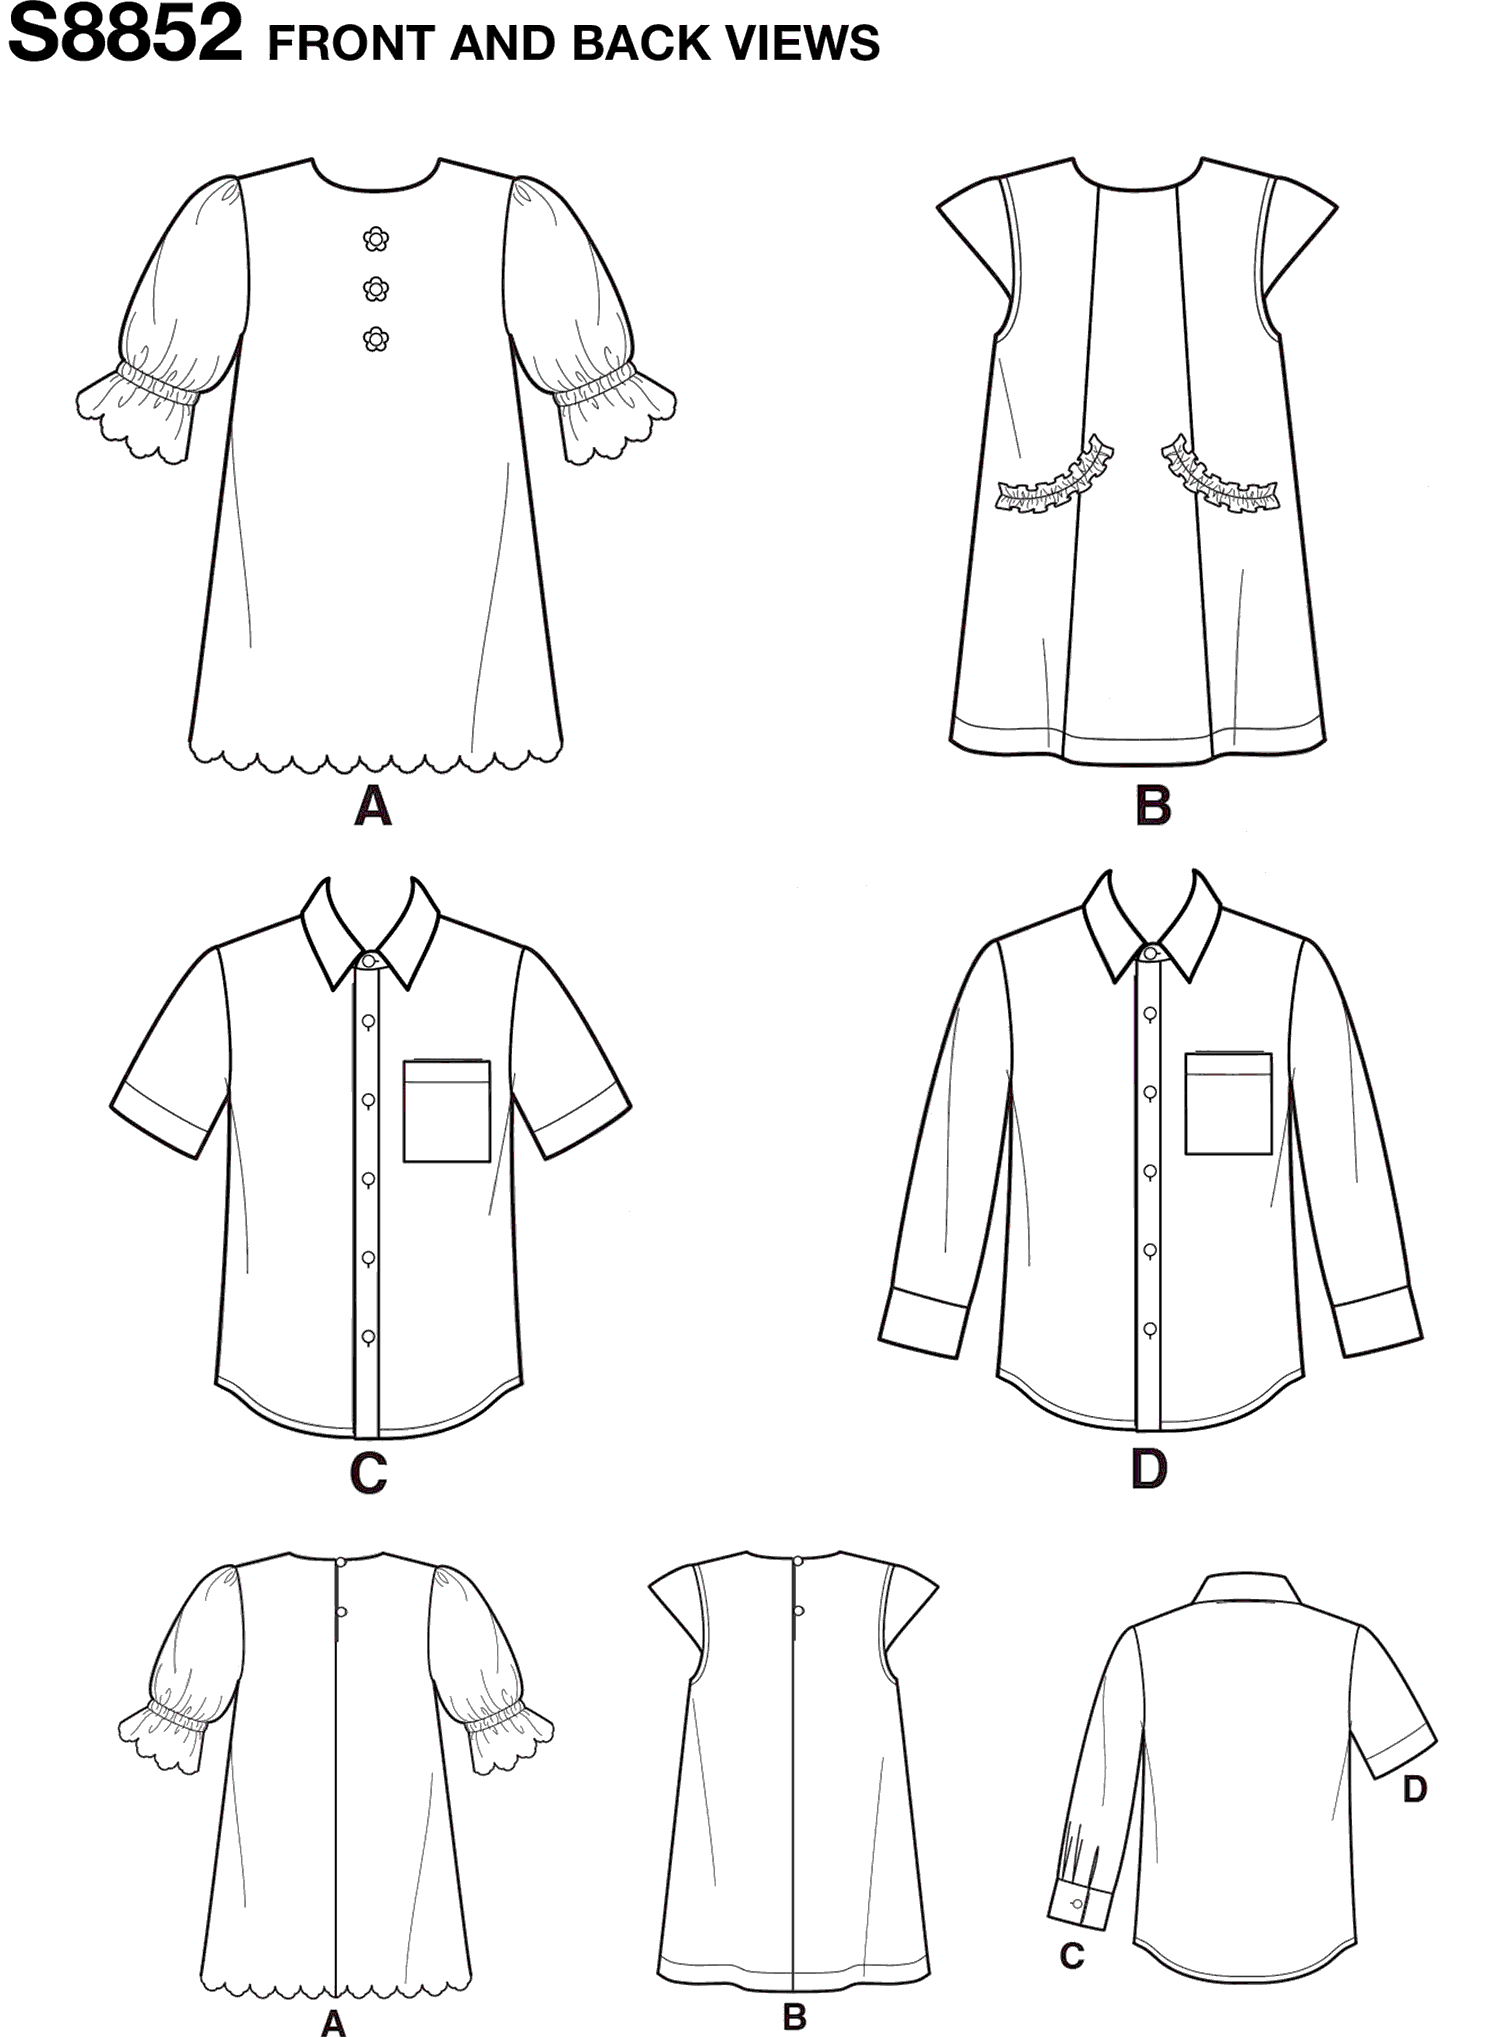 Simplicity Pattern S8852 Childs Dresses and Shirt 8852 Line Art From Patternsandplains.com